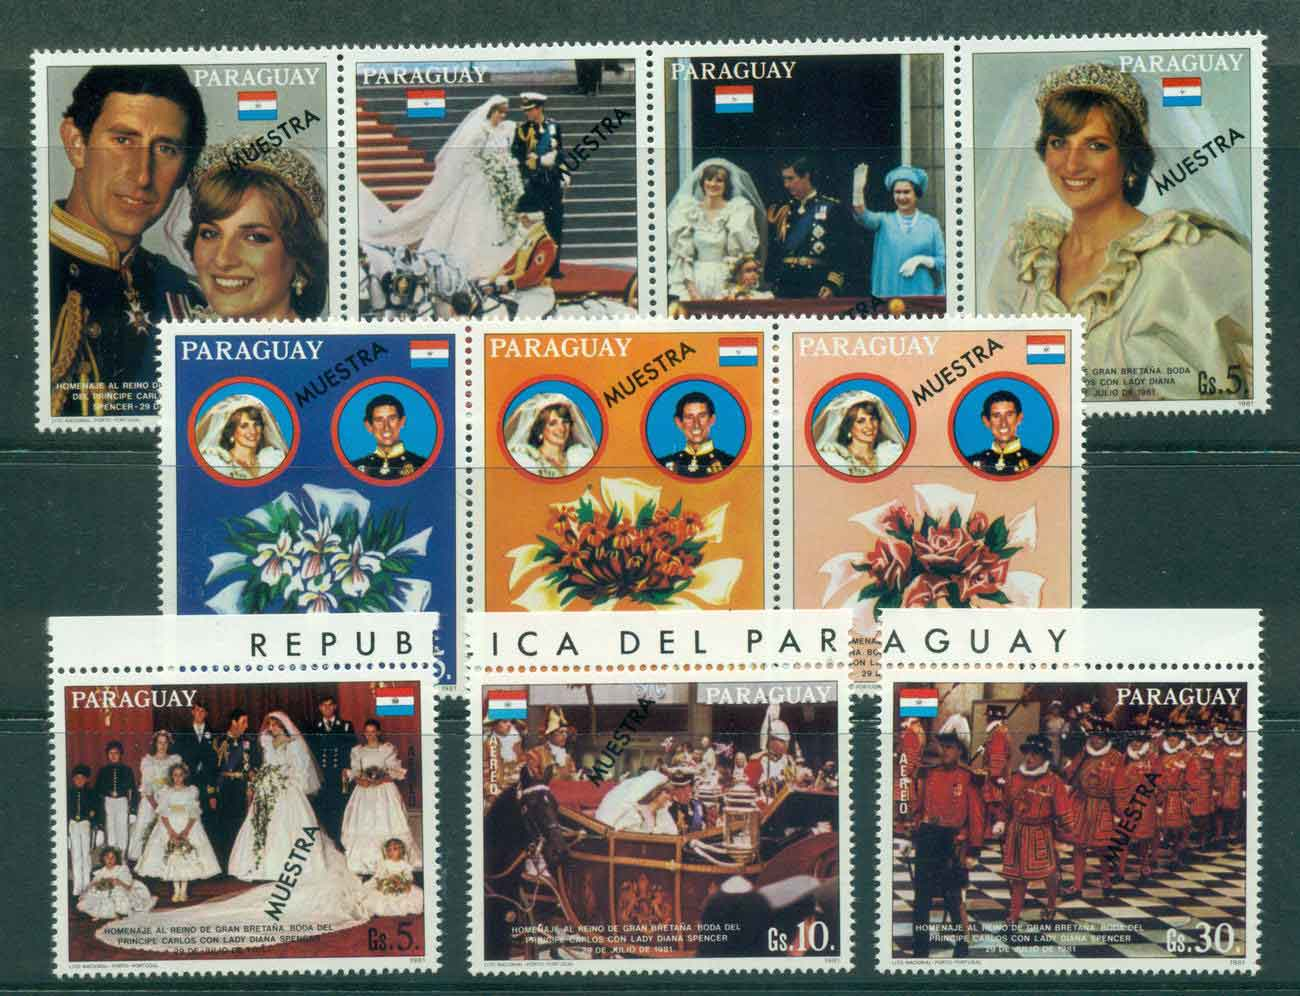 Paraguay 1981 Charles & Diana Wedding Str4,3 + 4 SPECIMEN (light creases)MUH Lot45153